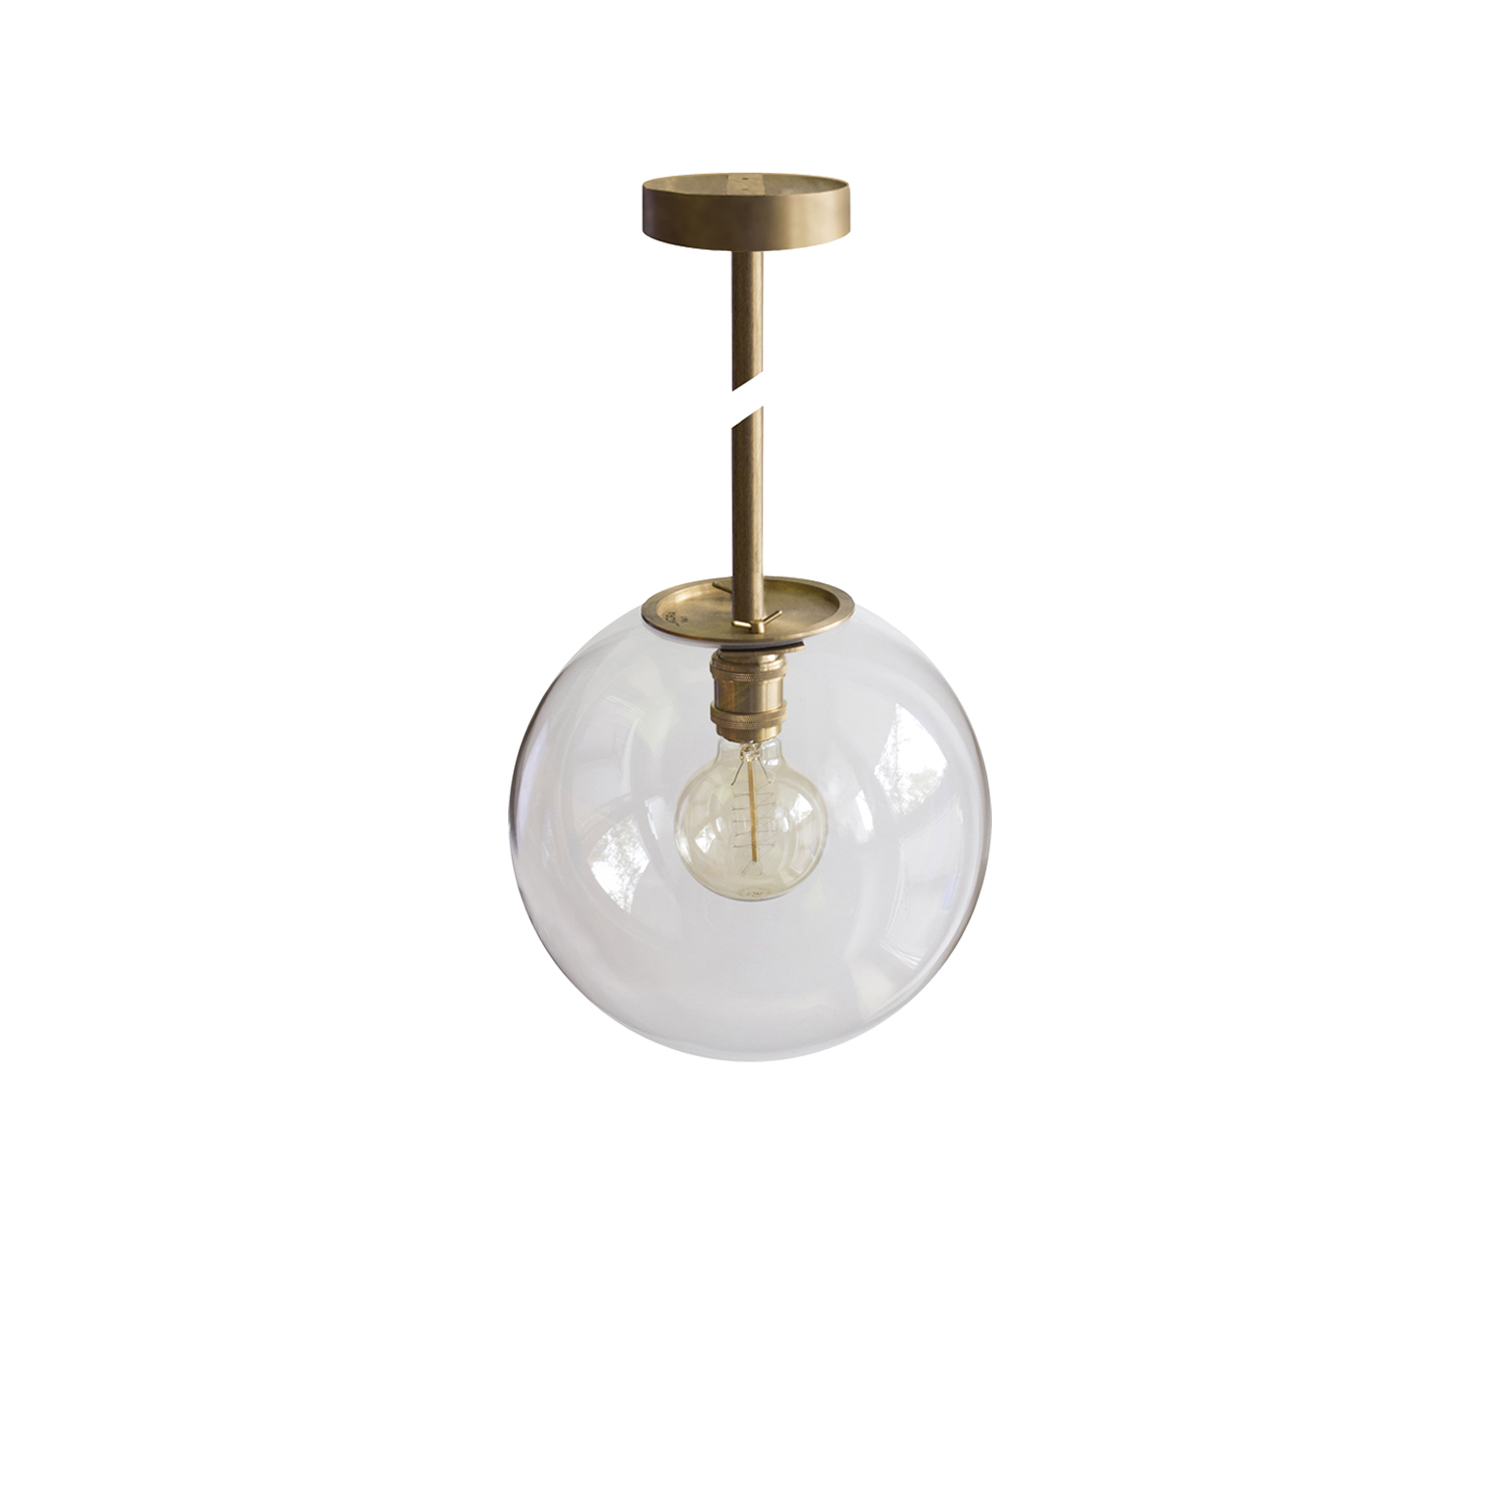 Emiter Pendant Lamp - Emiter hanging lamp is made from the brass elements and glass transparent shade. The hight of the tube can be adjusted - custom made for special order. The lamp has decorative bulb witch provides warm light. The lamp has the certificate. Serial number is engraved on it.  Subtle differences between products are results of hand crafting.   Thanks to the natural properties of brass, lamp will receive an elegant patina finish | Matter of Stuff